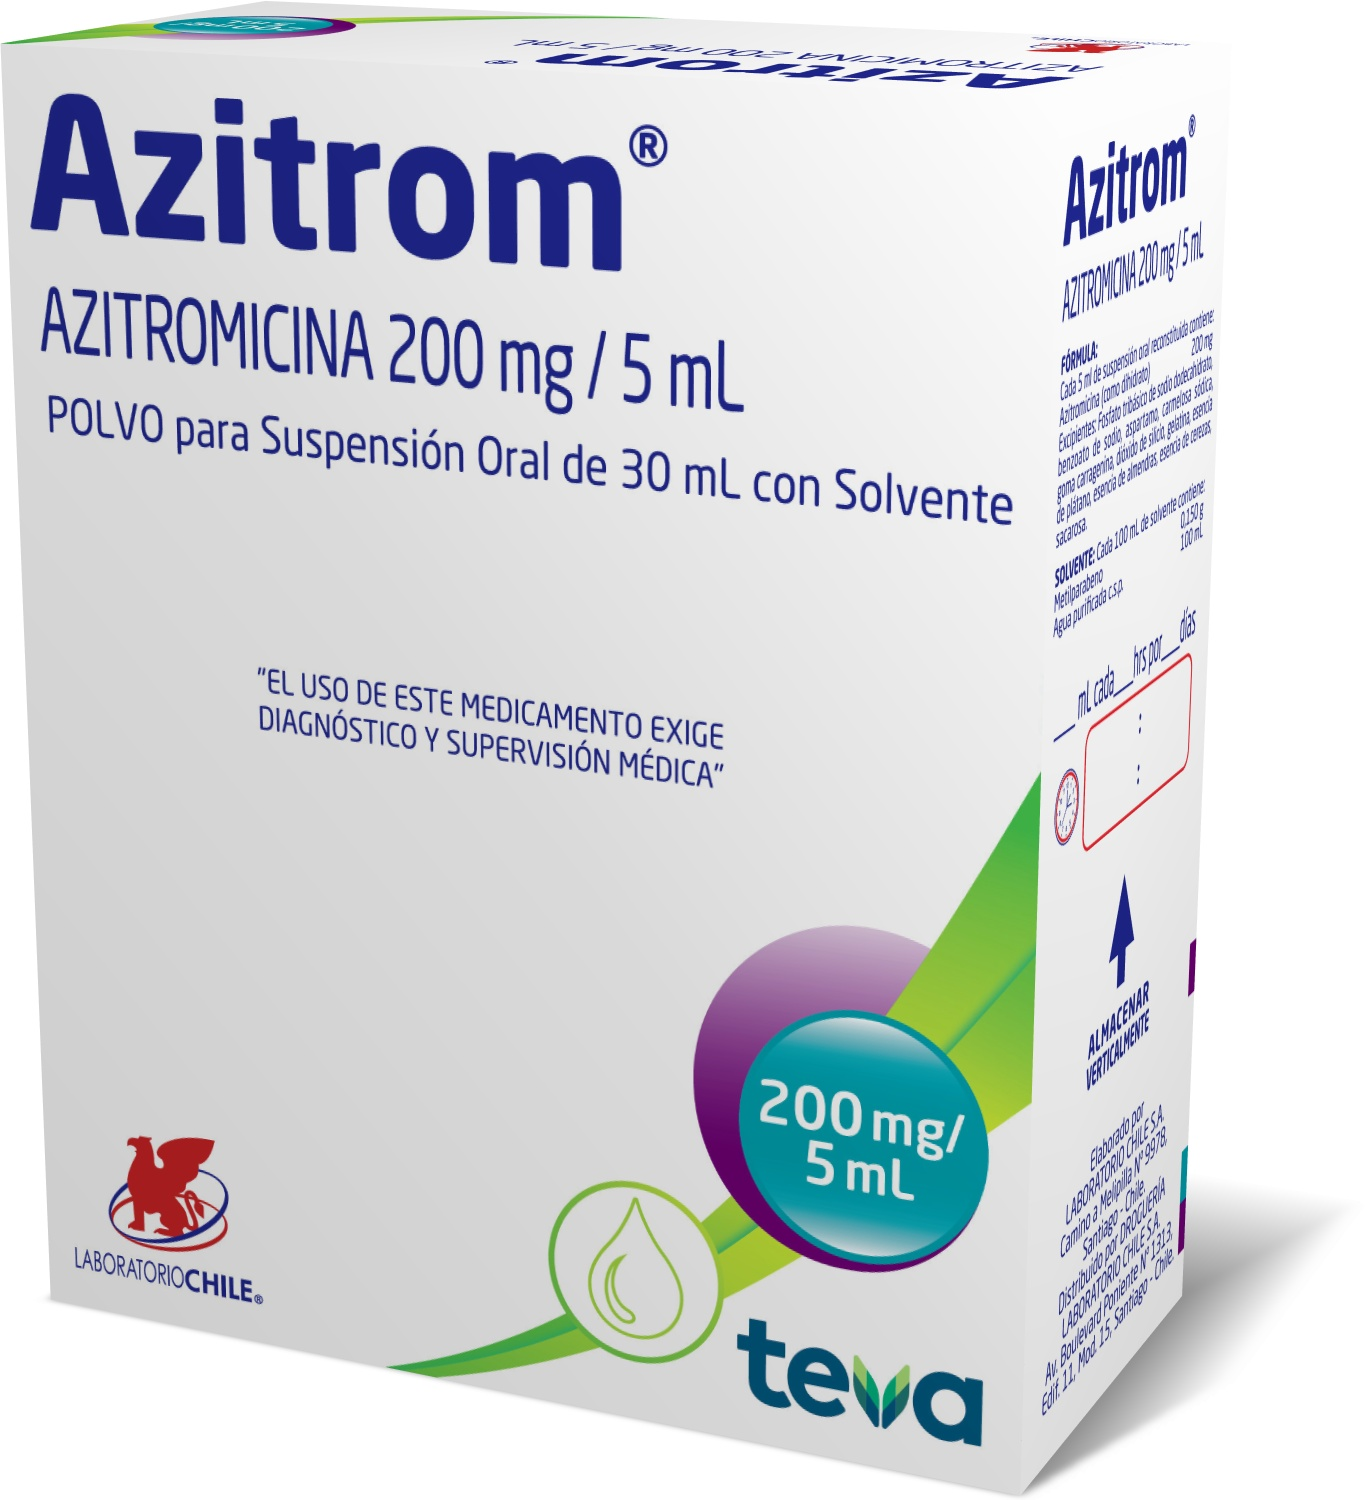 Azitrom 200 mg / 5 mL